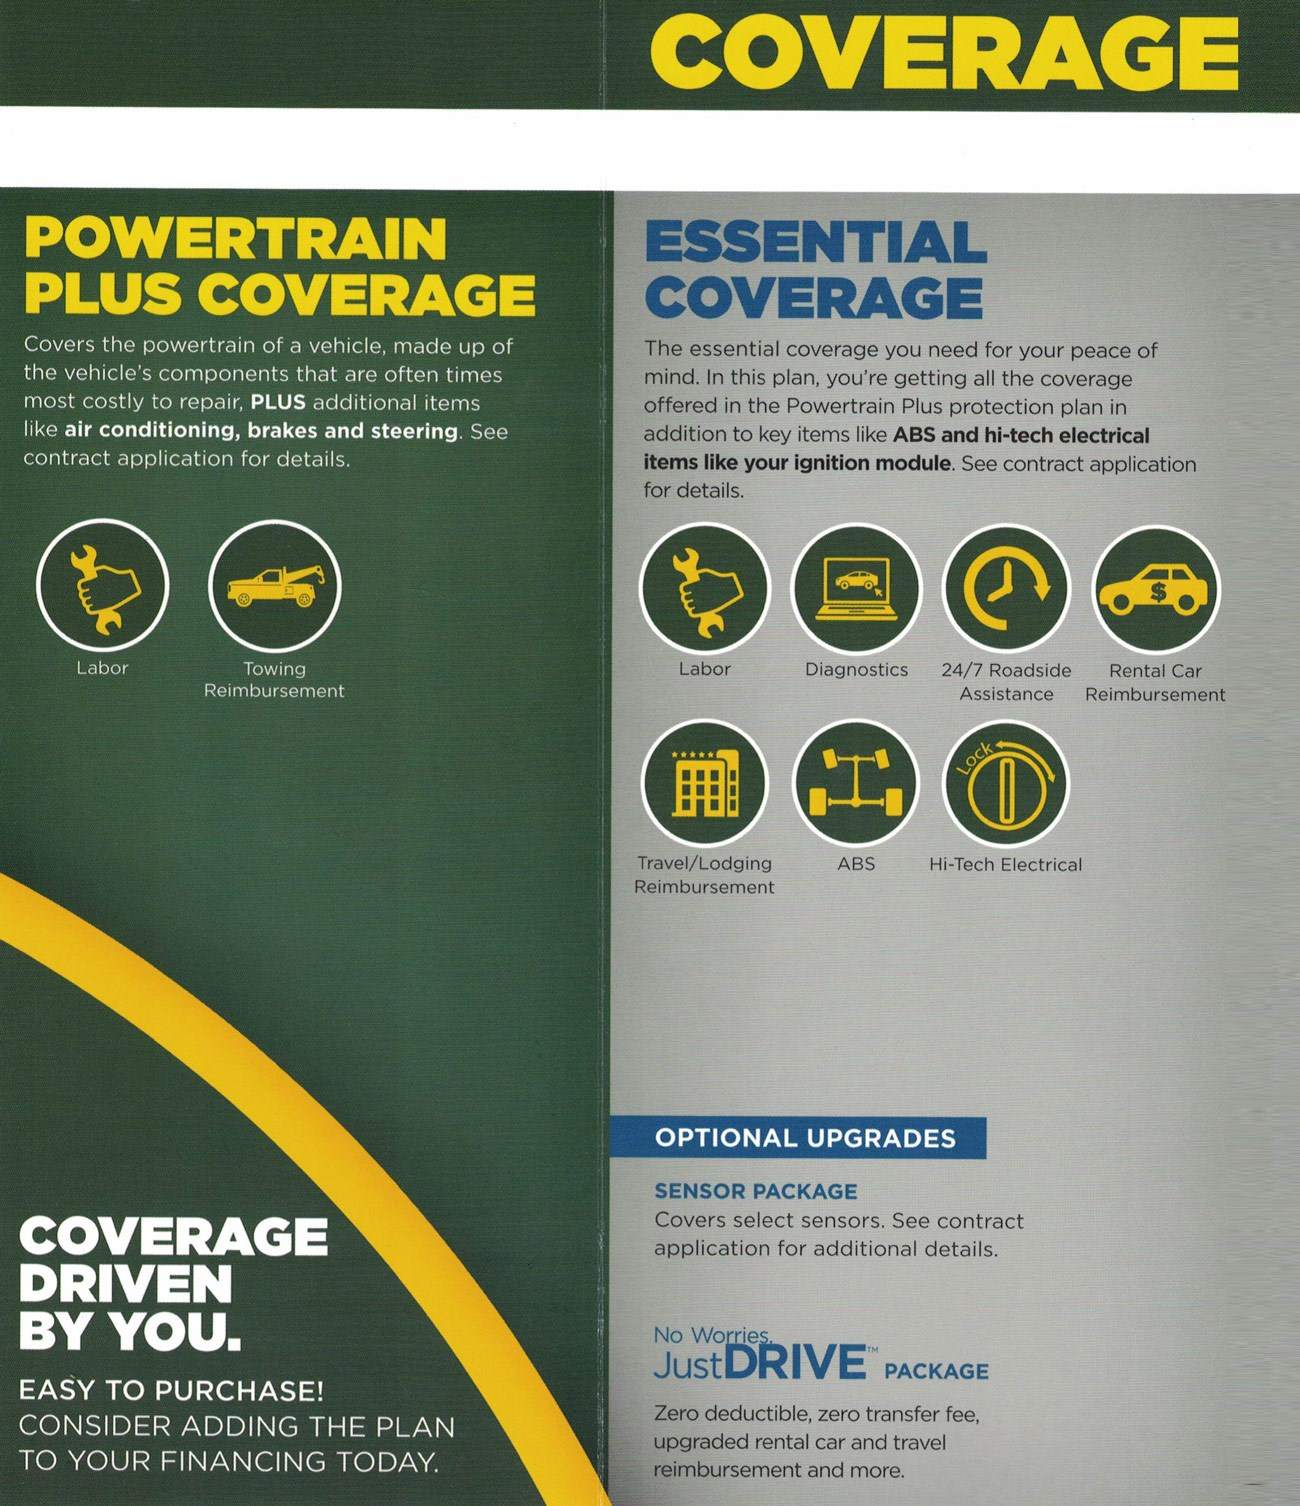 Image: Power Train Plus Coverage (Includes additional items like ac, brakes, steering) | Essential Coverage = Power Train Plus Protection + ABS and high tech electrical items like your ignition module